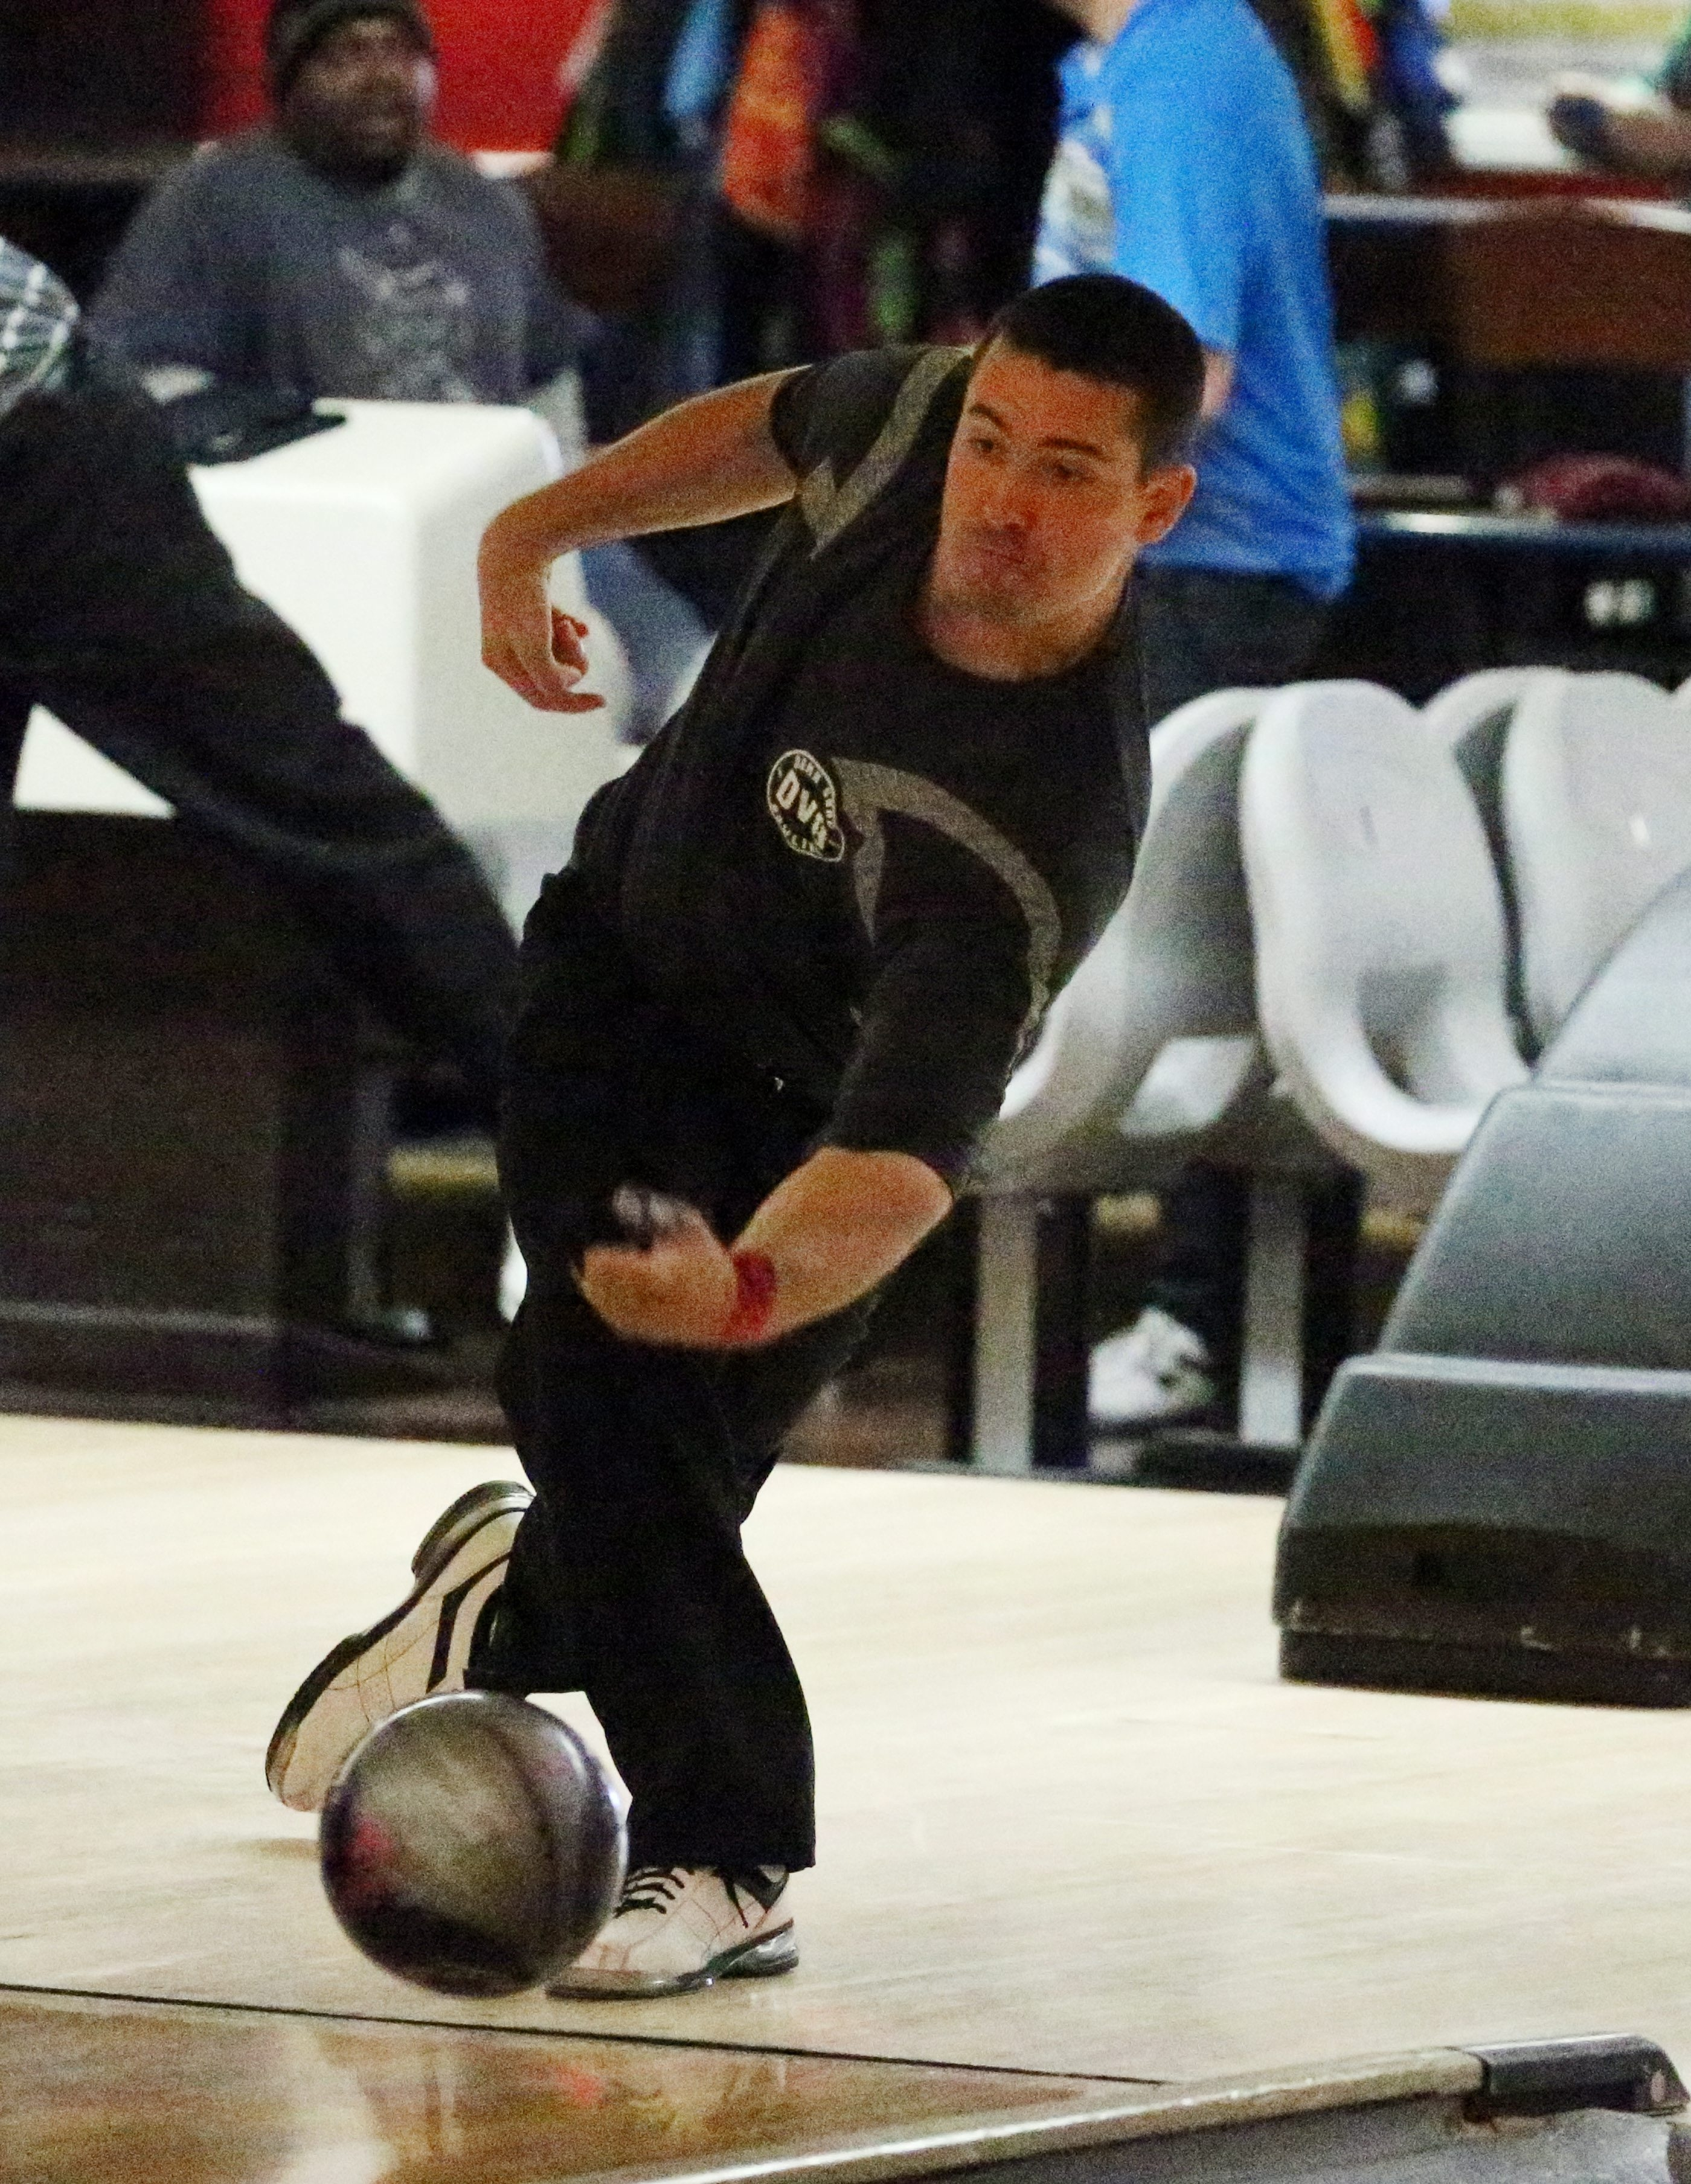 Ryan Ciminelli rolled a 300 game en route to his third title at the Obenauer Masters tournament.